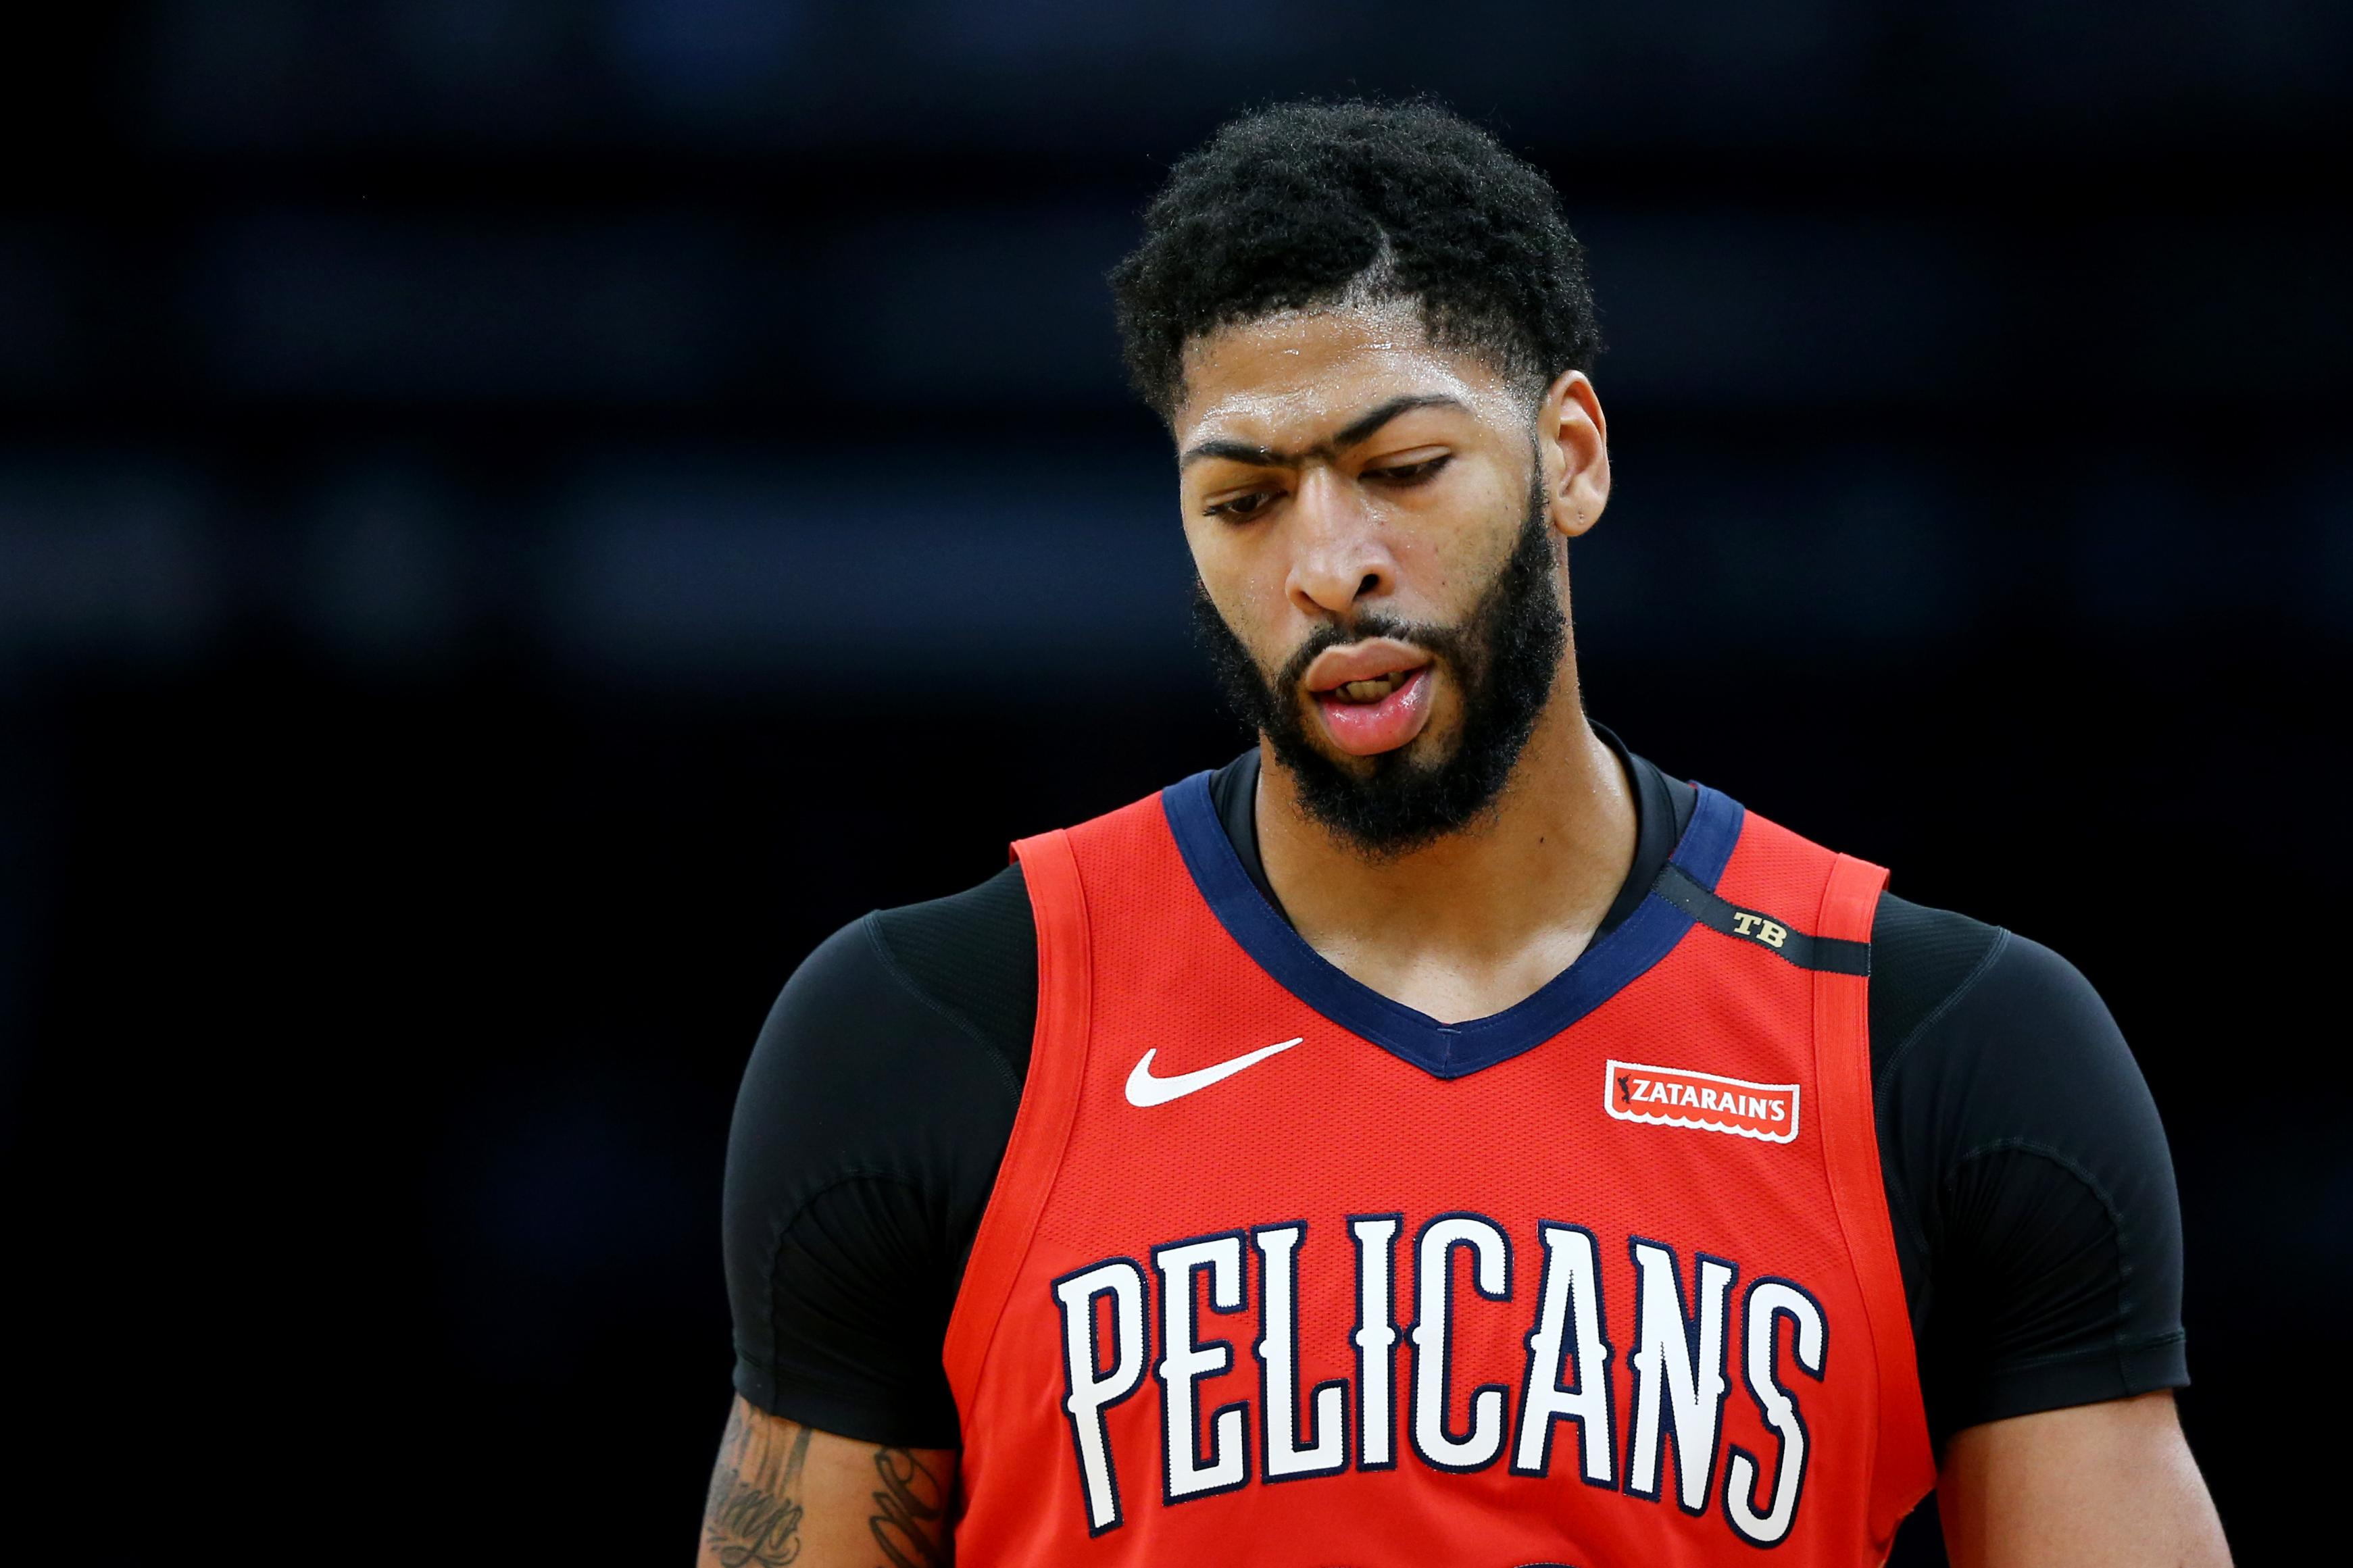 Anthony Davis Pelicans Celtics